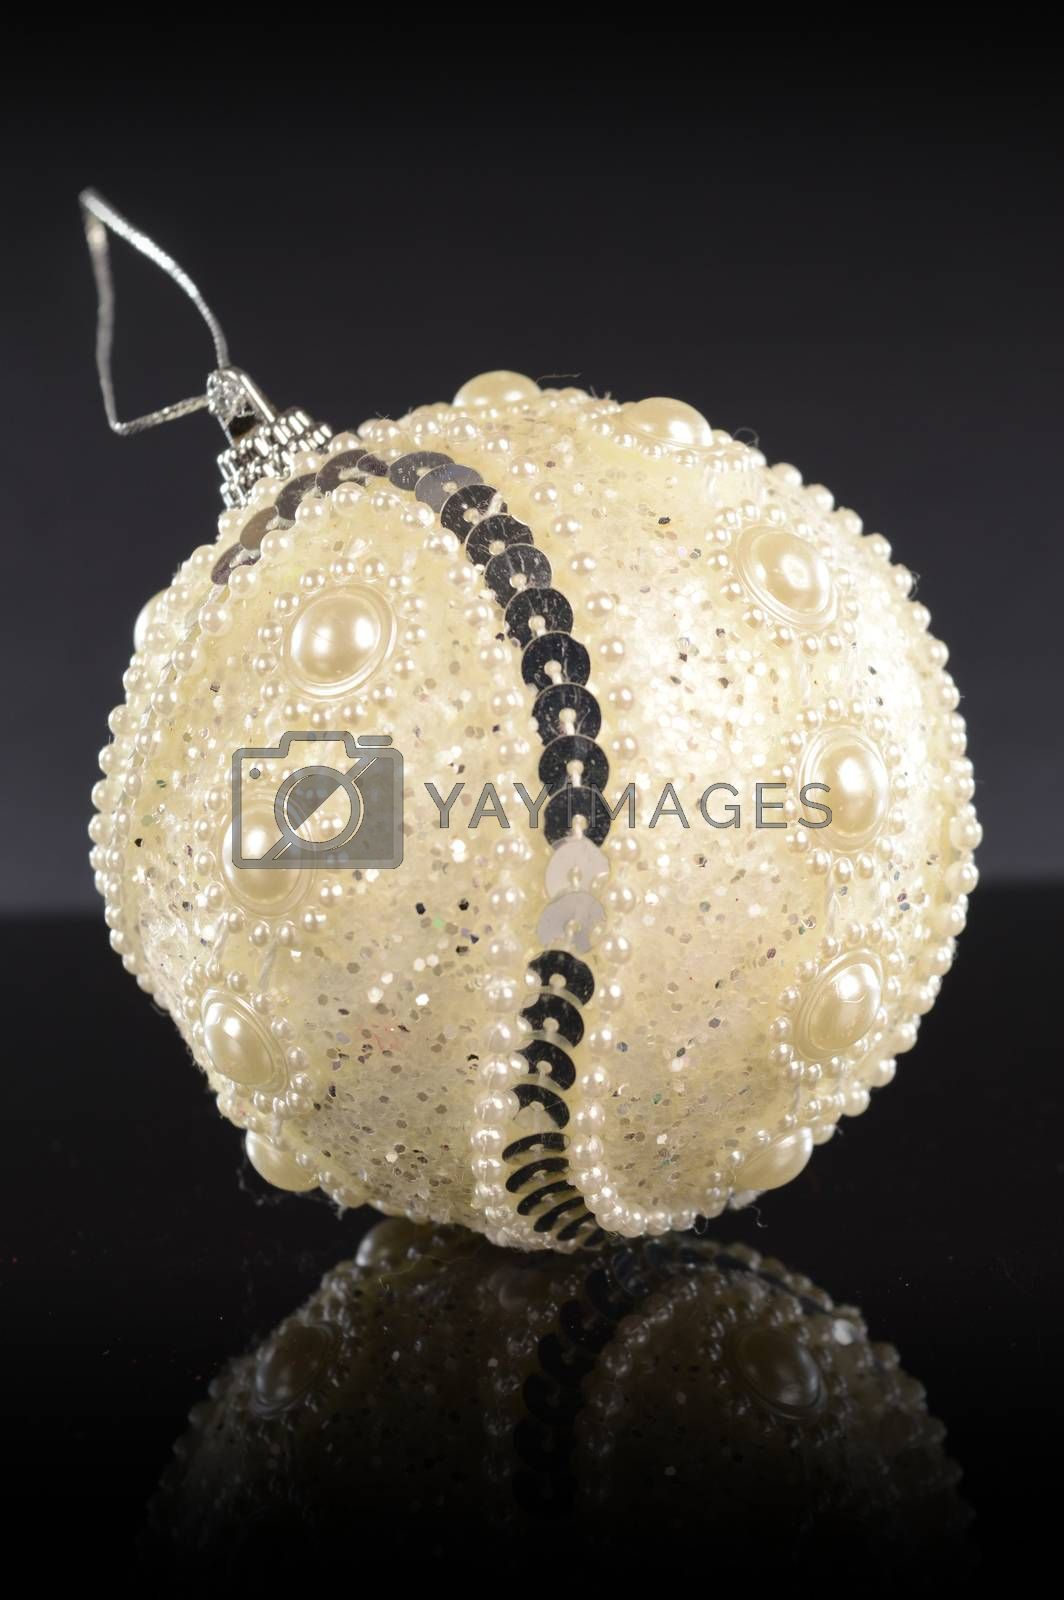 A closeup vertical composition of a white festive holiday bauble for tree decorating during the Christmas season.